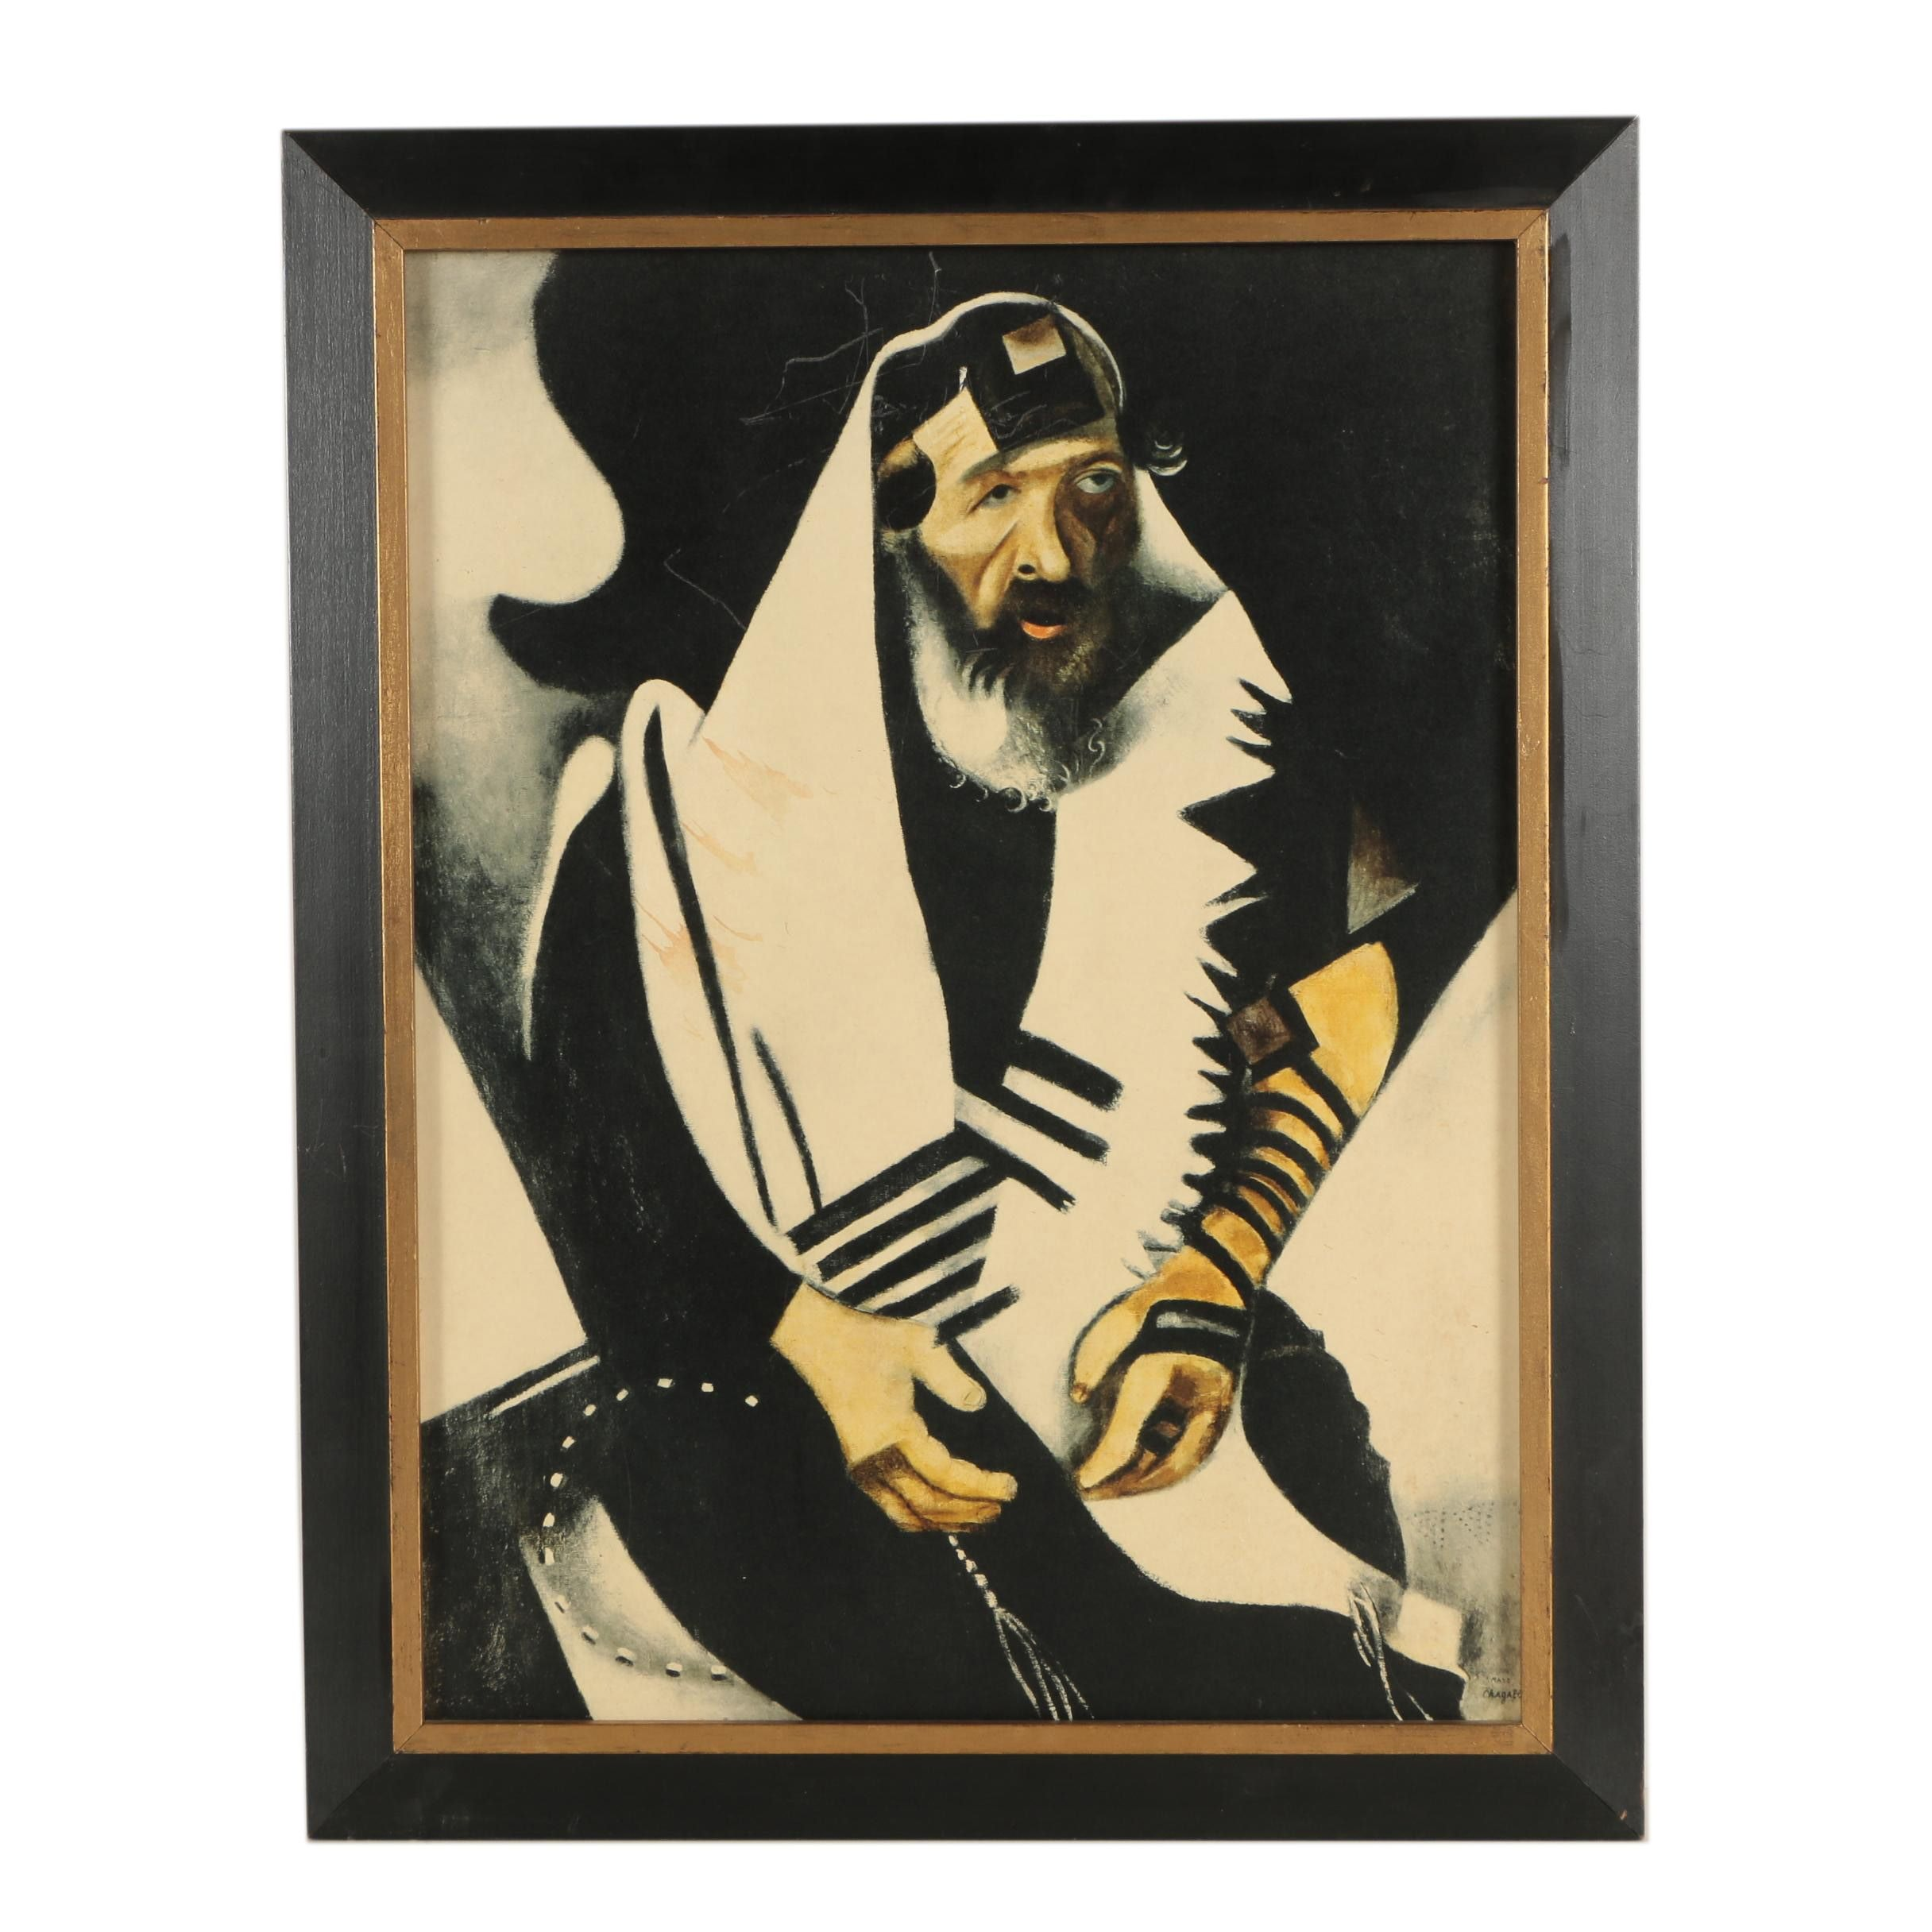 """Reproduction Print After Marc Chagall's """"The Praying Jew (Rabbi of Vitebsk)"""""""